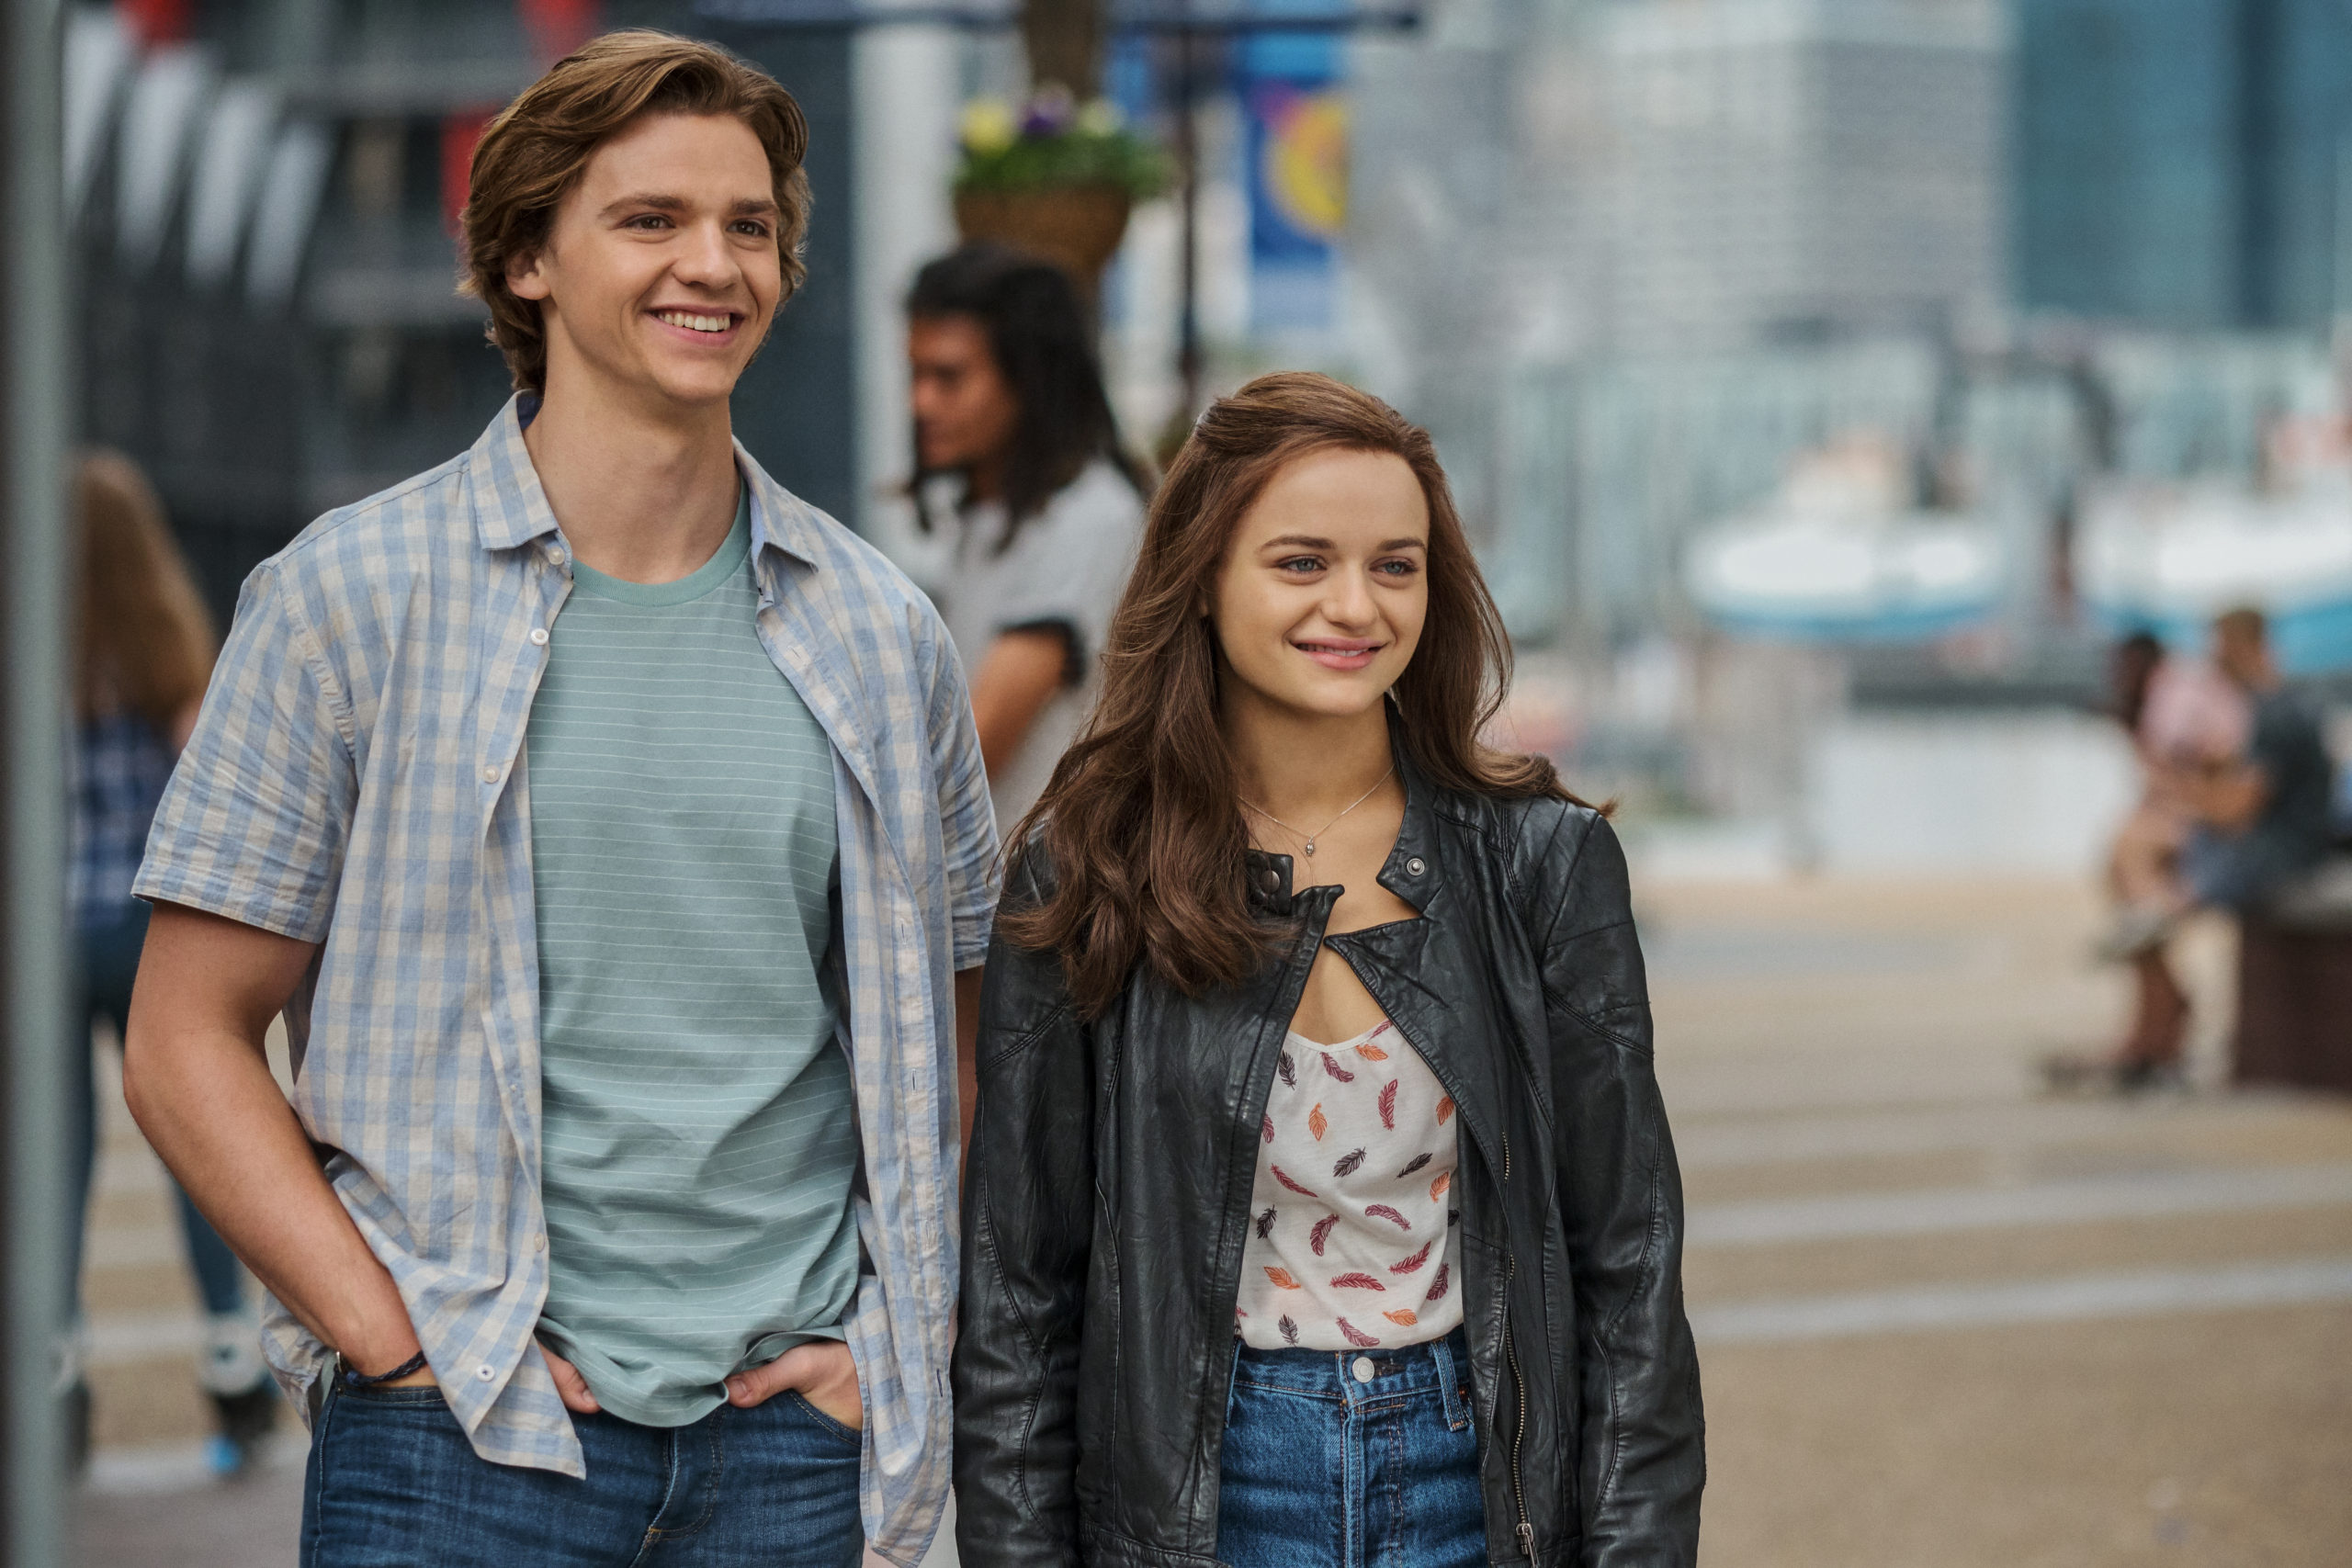 The Kissing Booth 3 Release Date, Cast